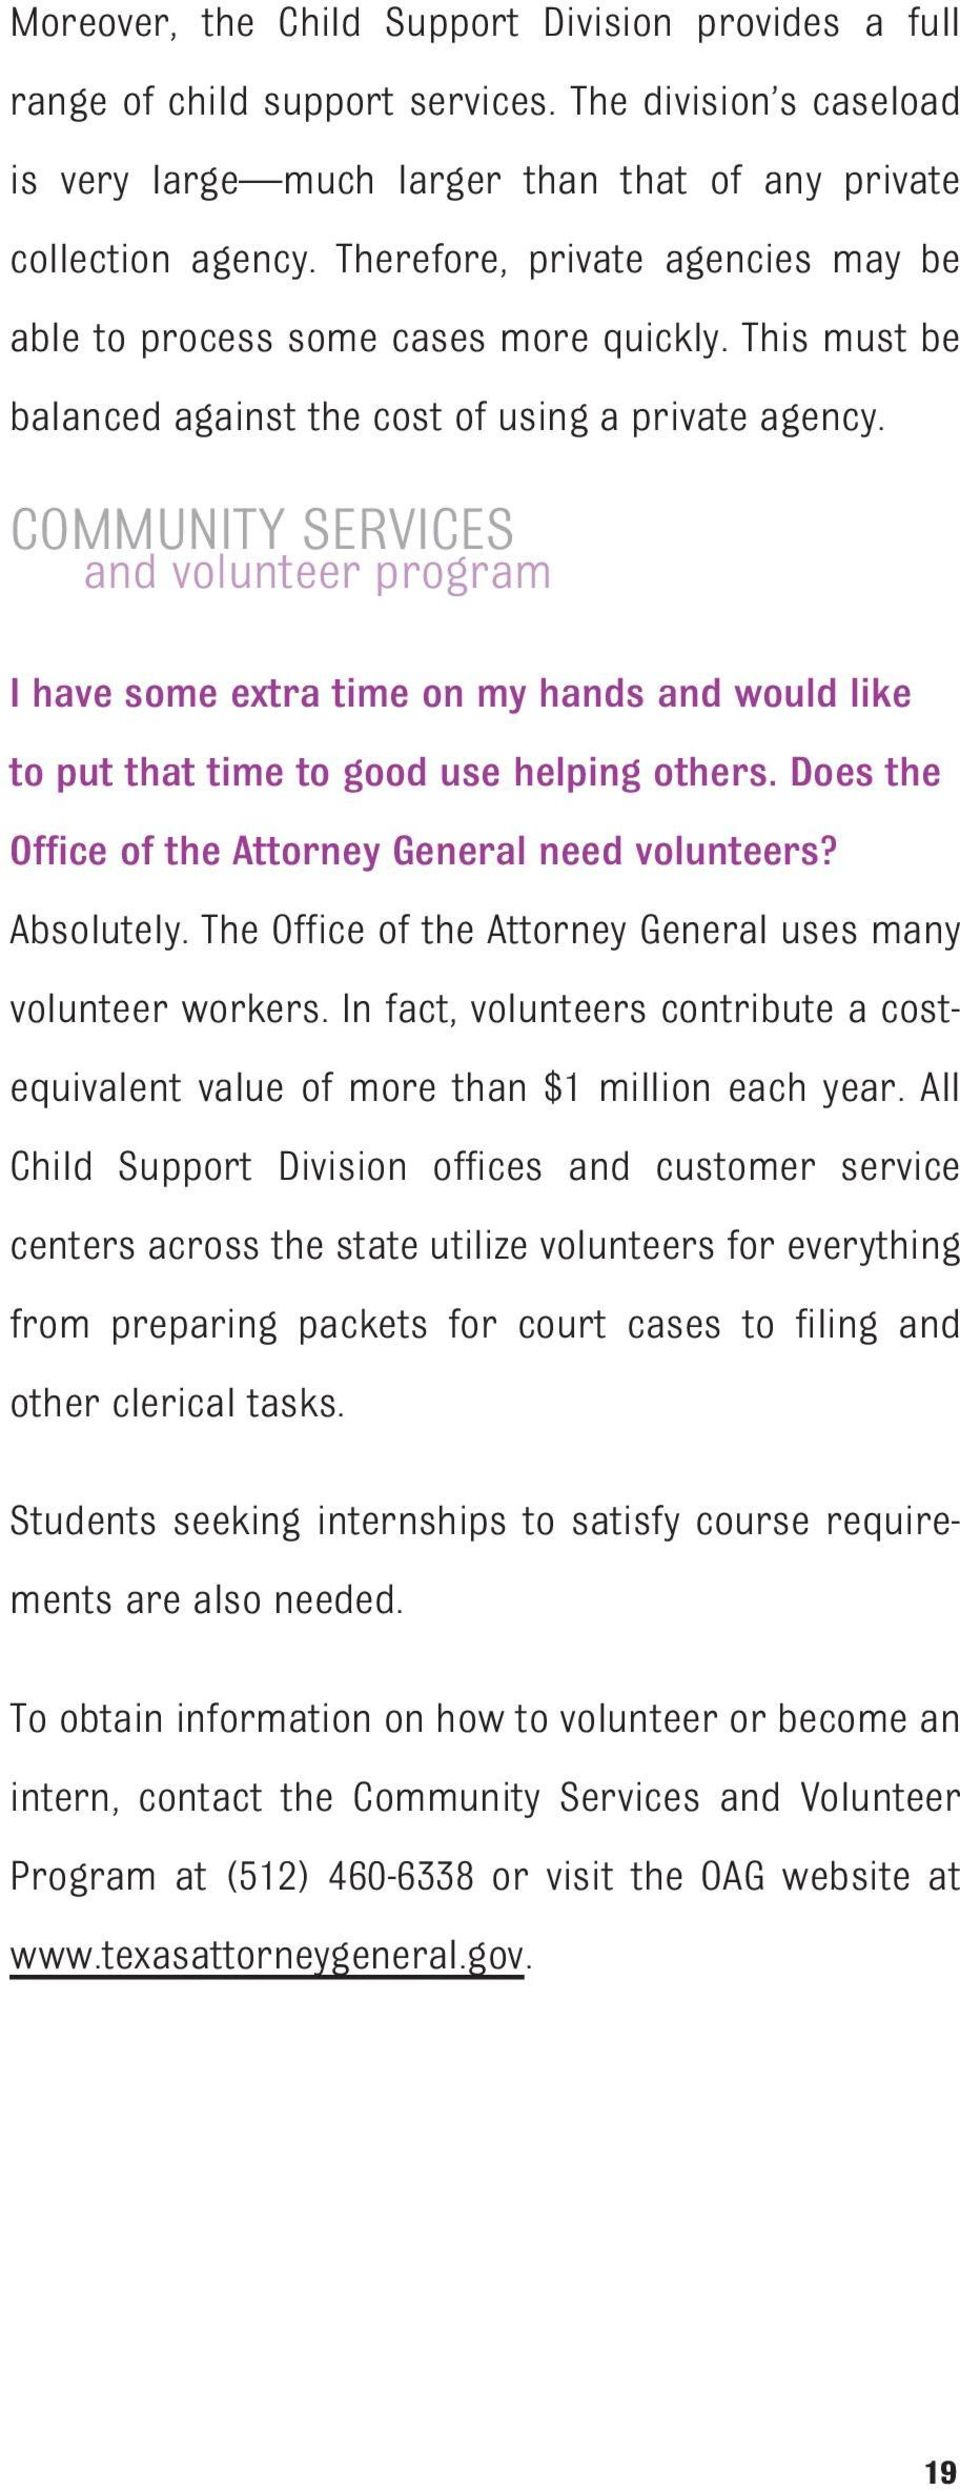 COMMUNITY SERVICES and volunteer program I have some extra time on my hands and would like to put that time to good use helping others. Does the Office of the Attorney General need volunteers?